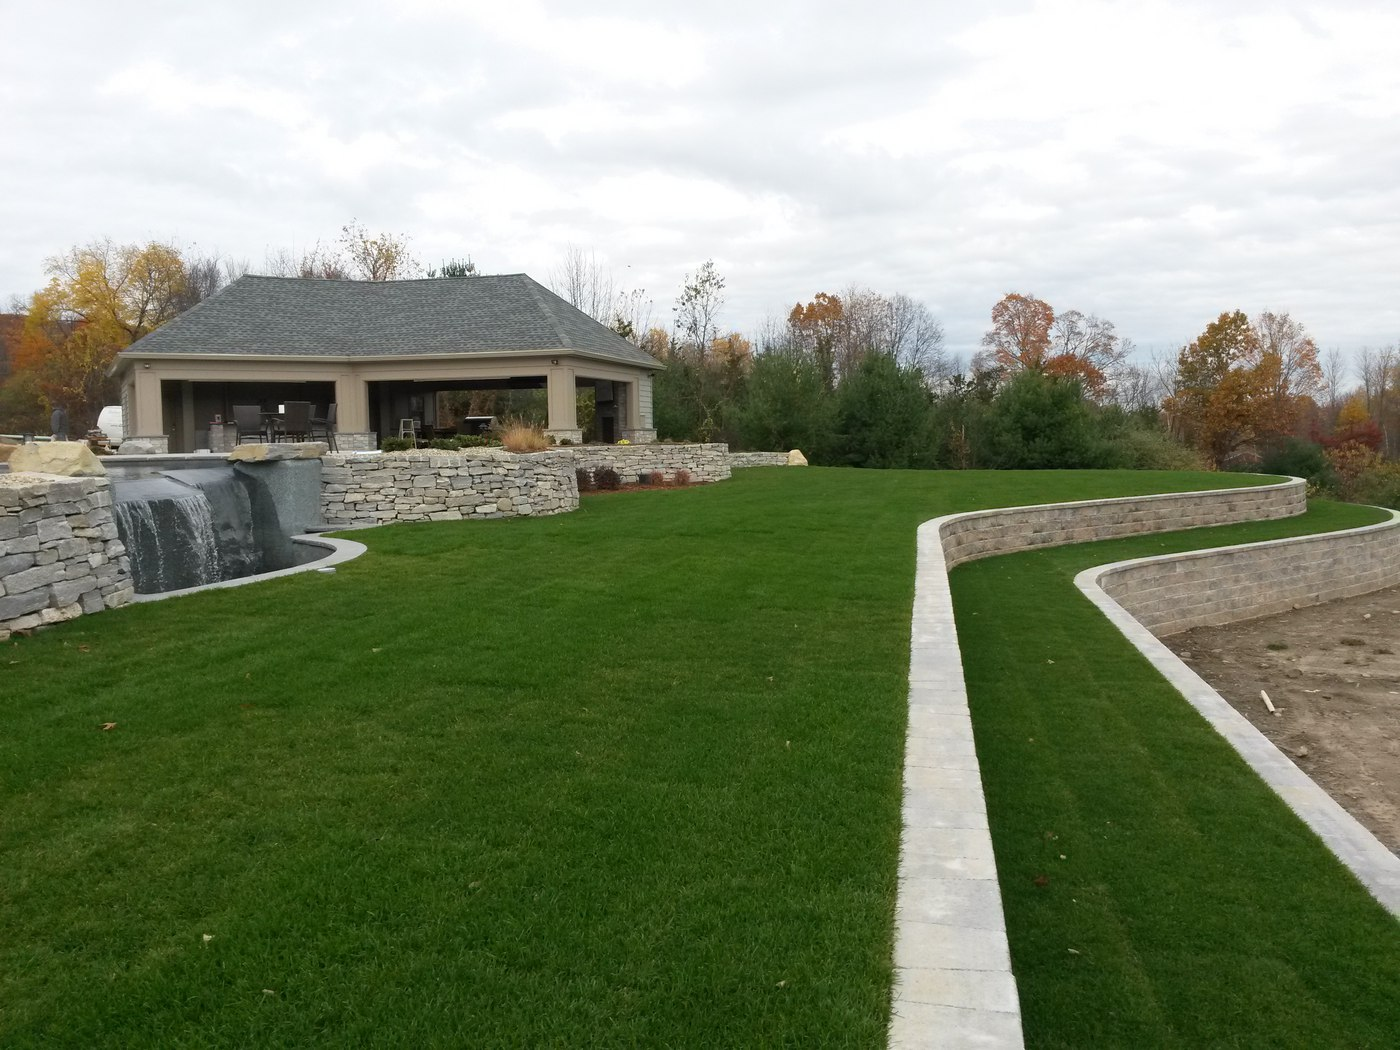 Fieldstone Walls and Paver Block Walls by Bahler Brothers serving MA and CT